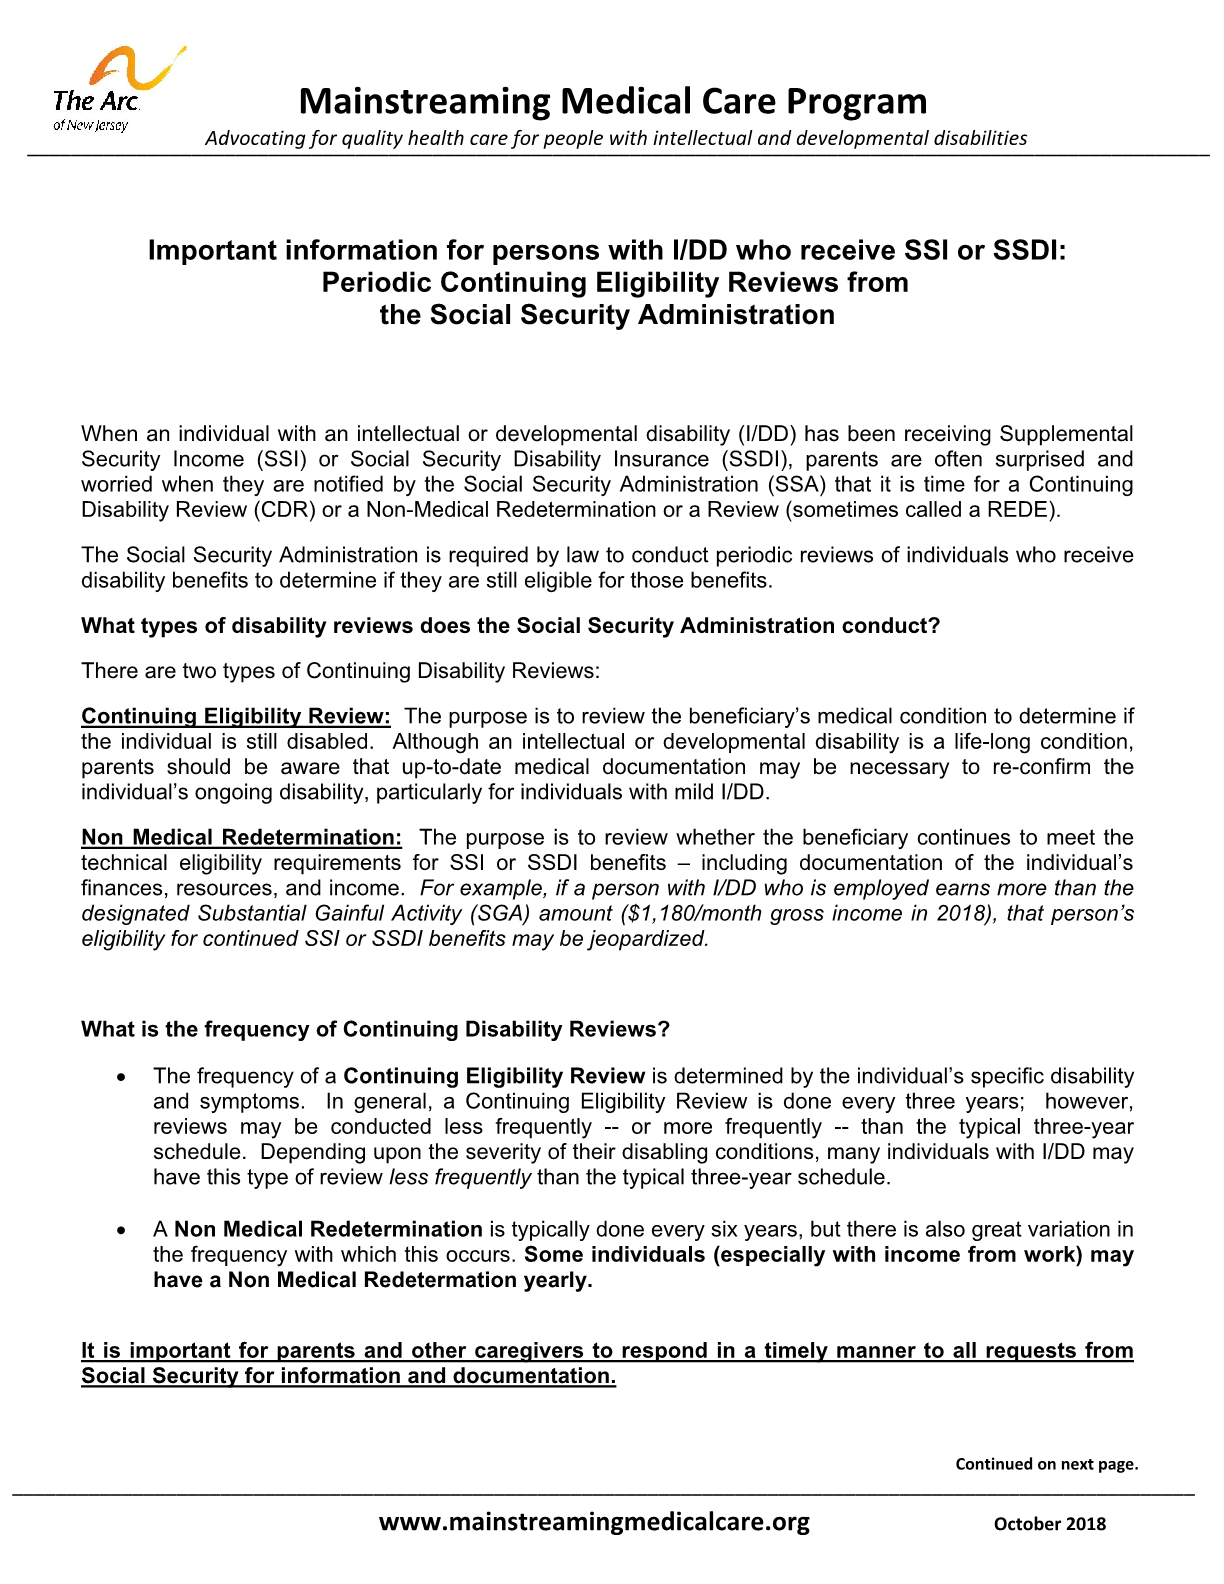 Periodic Continuing Eligibility Reviews from the Social Security Administration: Important information for persons with I/DD who receive SSI or SSDI